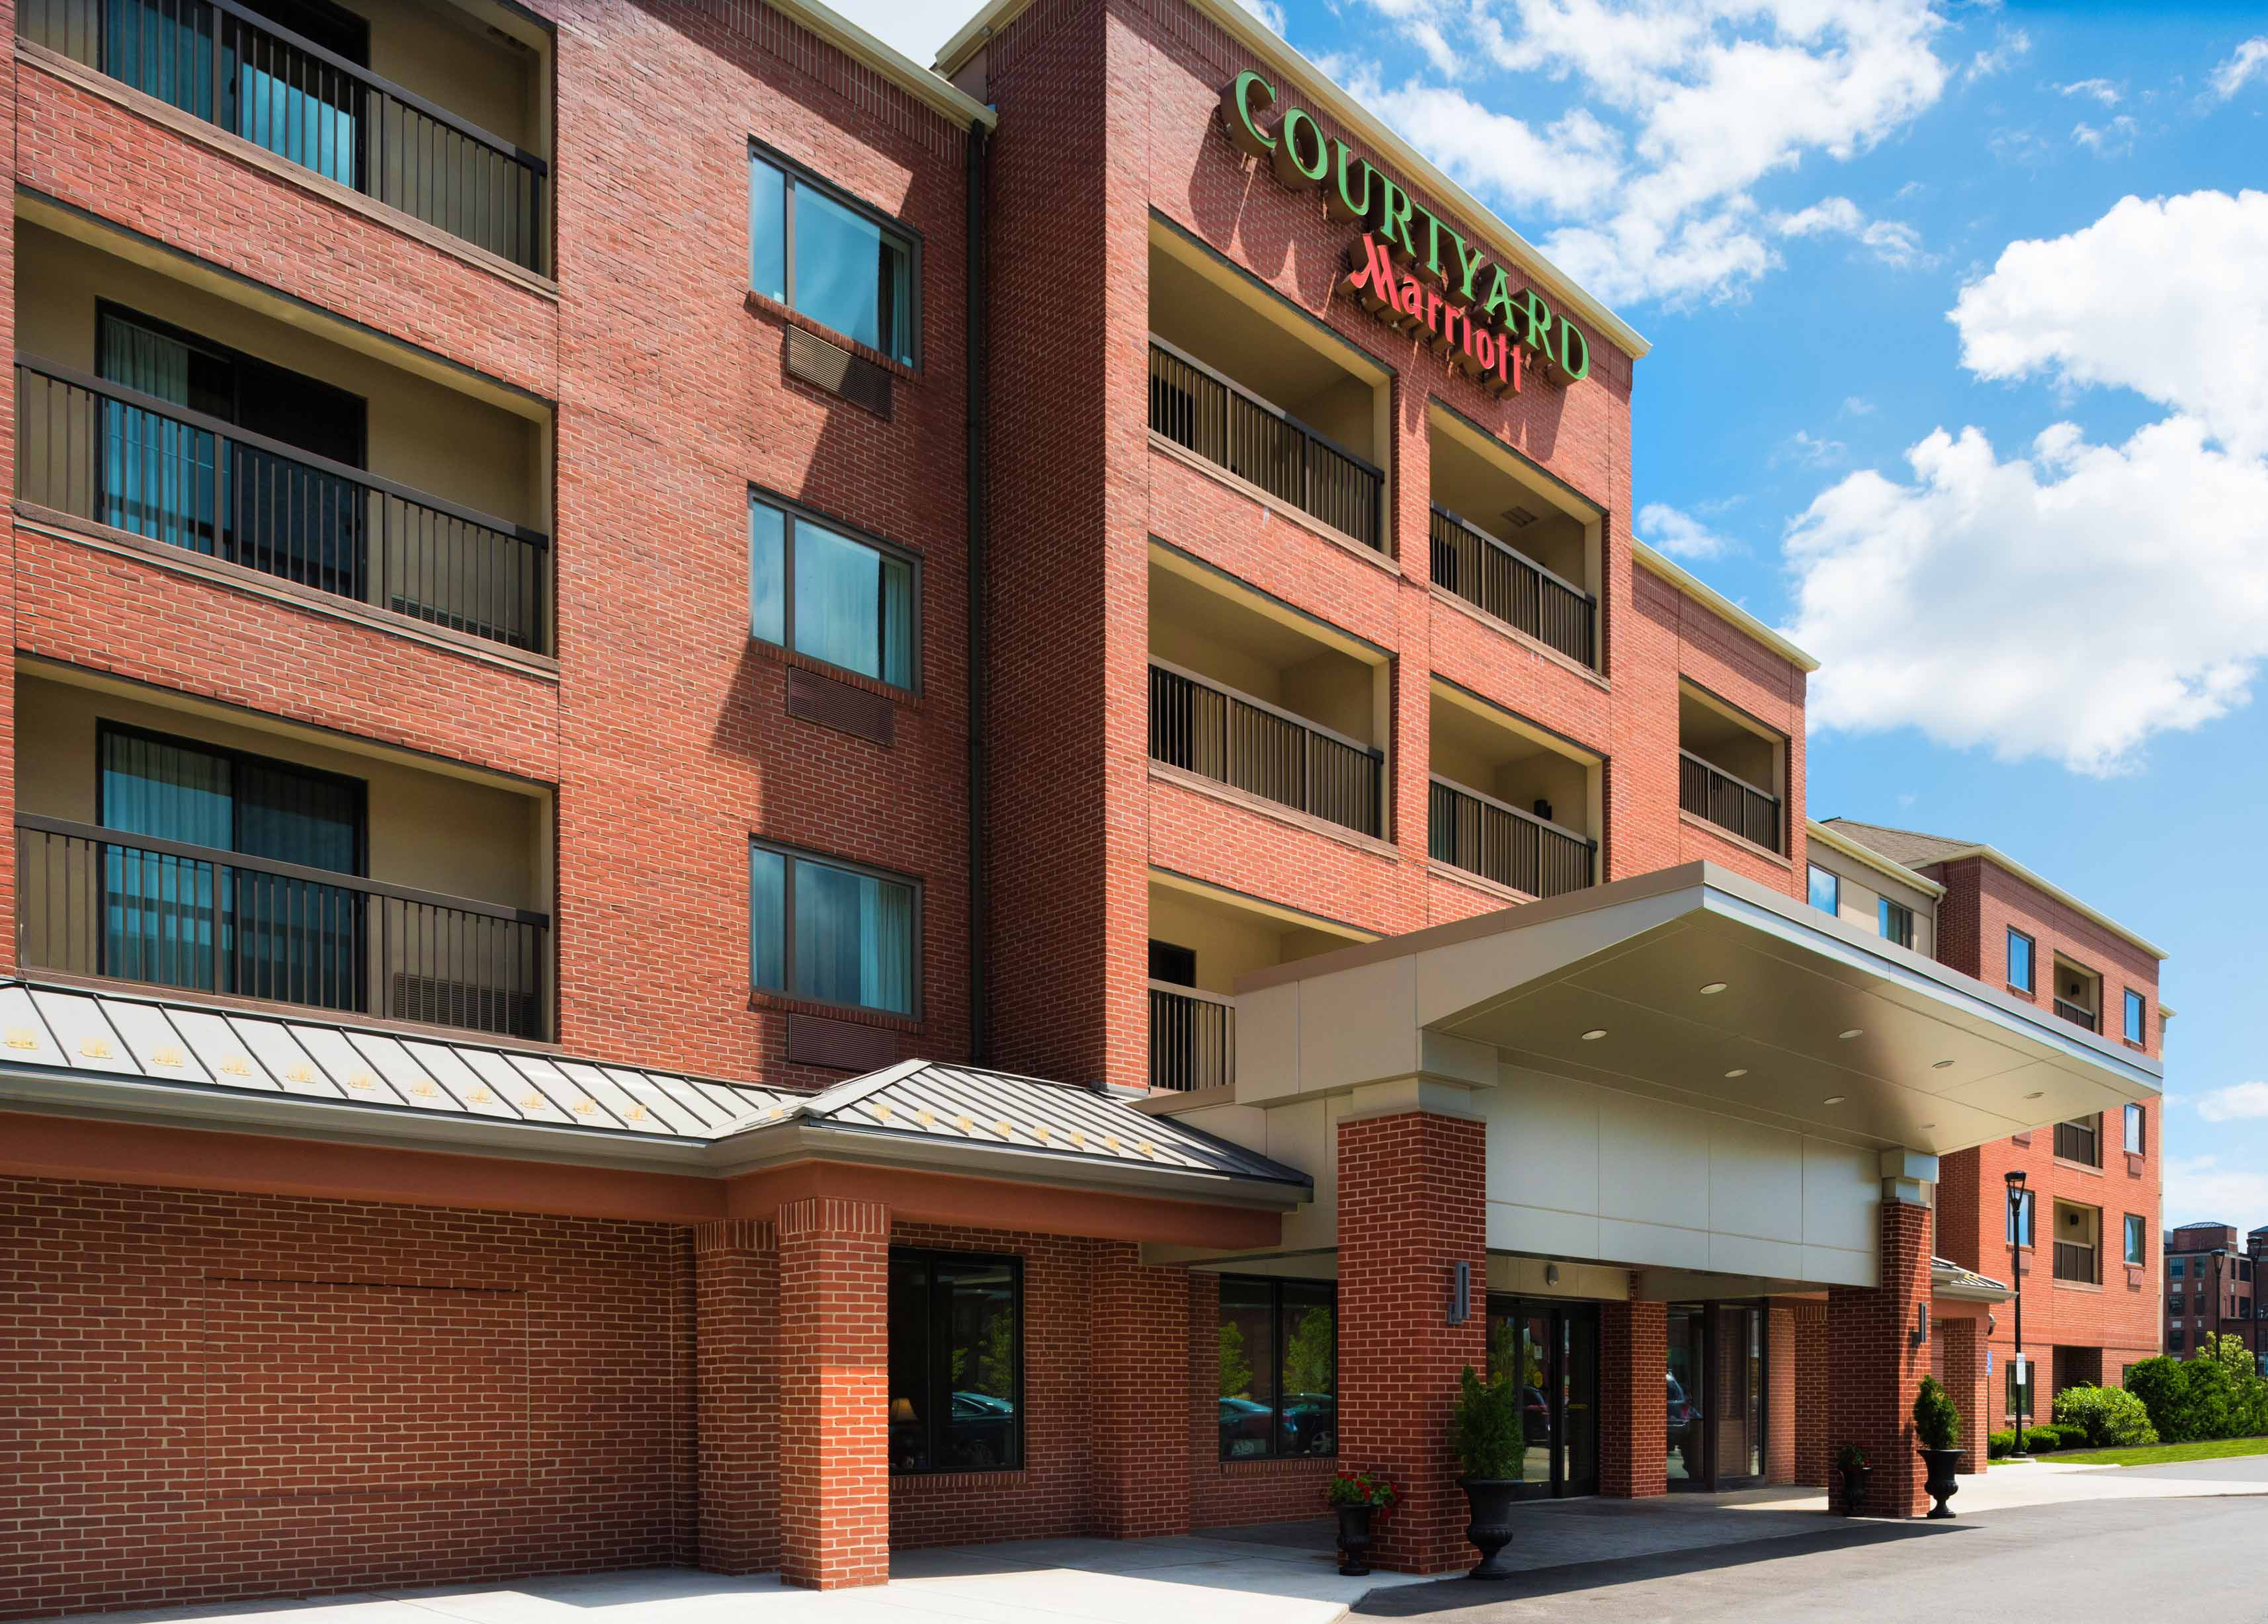 Courtyard by Marriott - Worcester